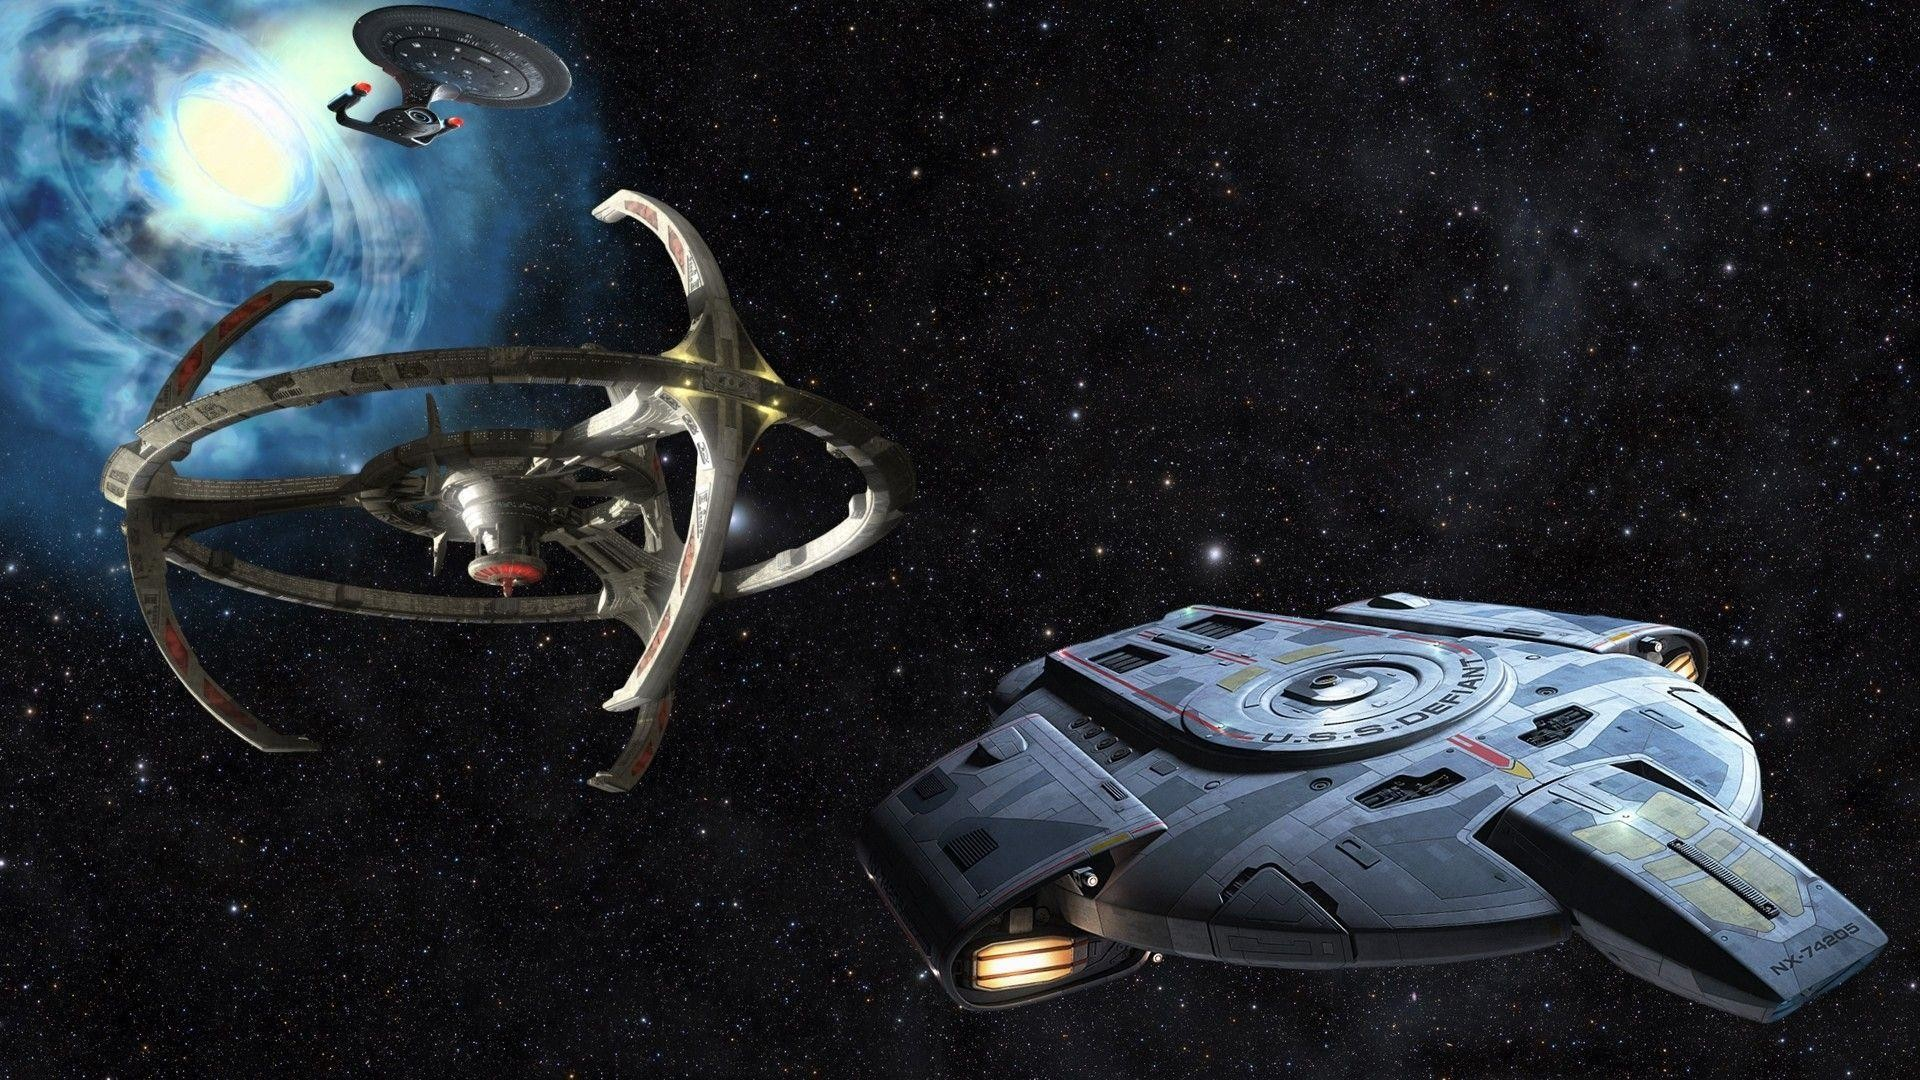 Tv Show Star Trek Deep Space Nine Wallpapers And Backgrounds Id